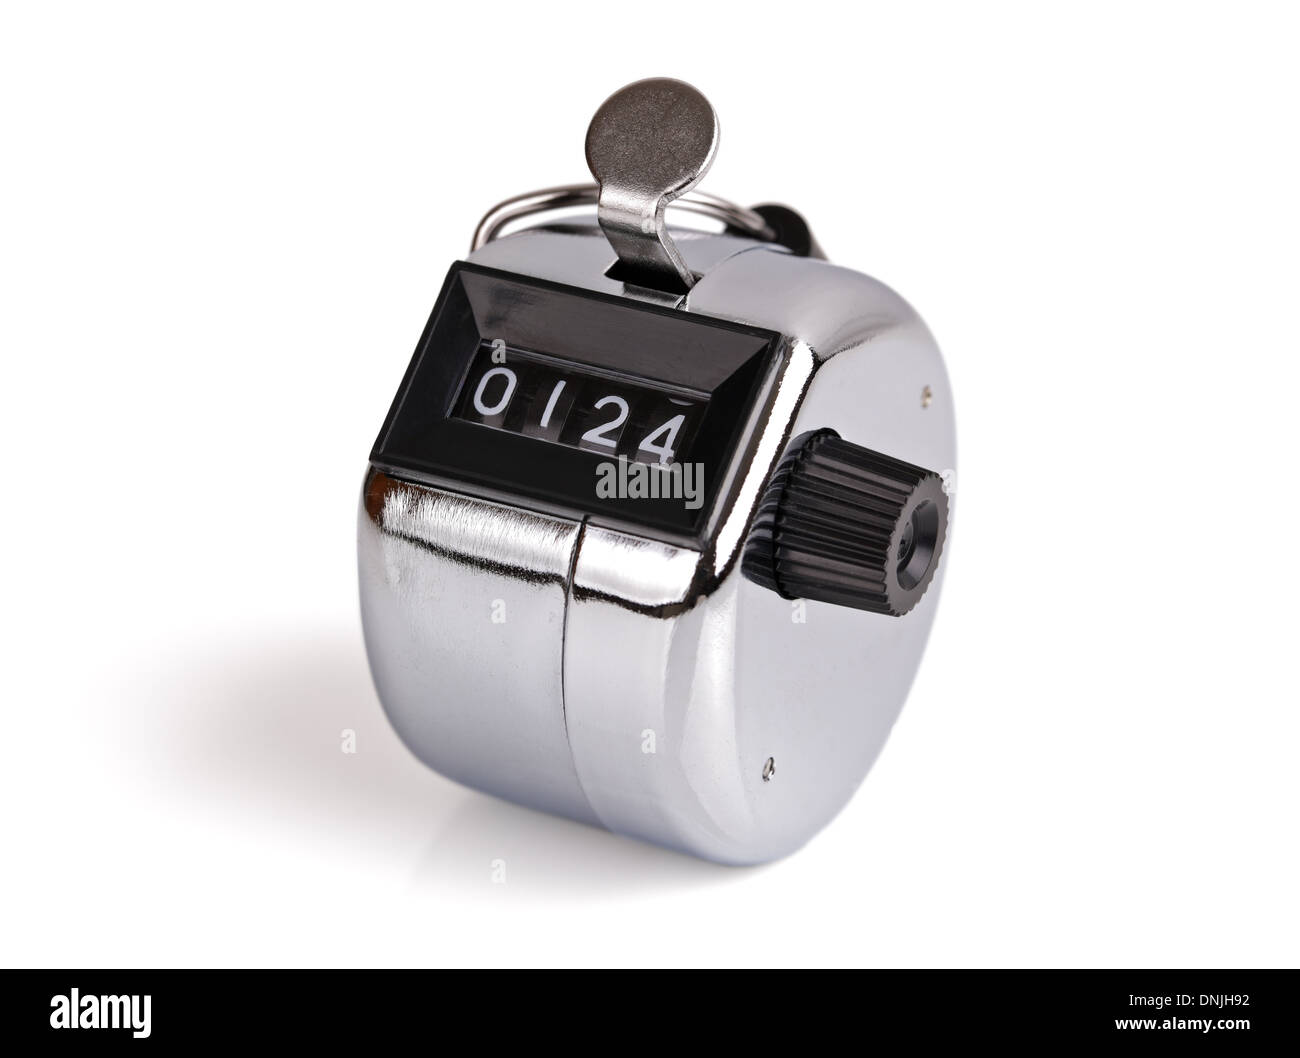 Tally counter - Stock Image